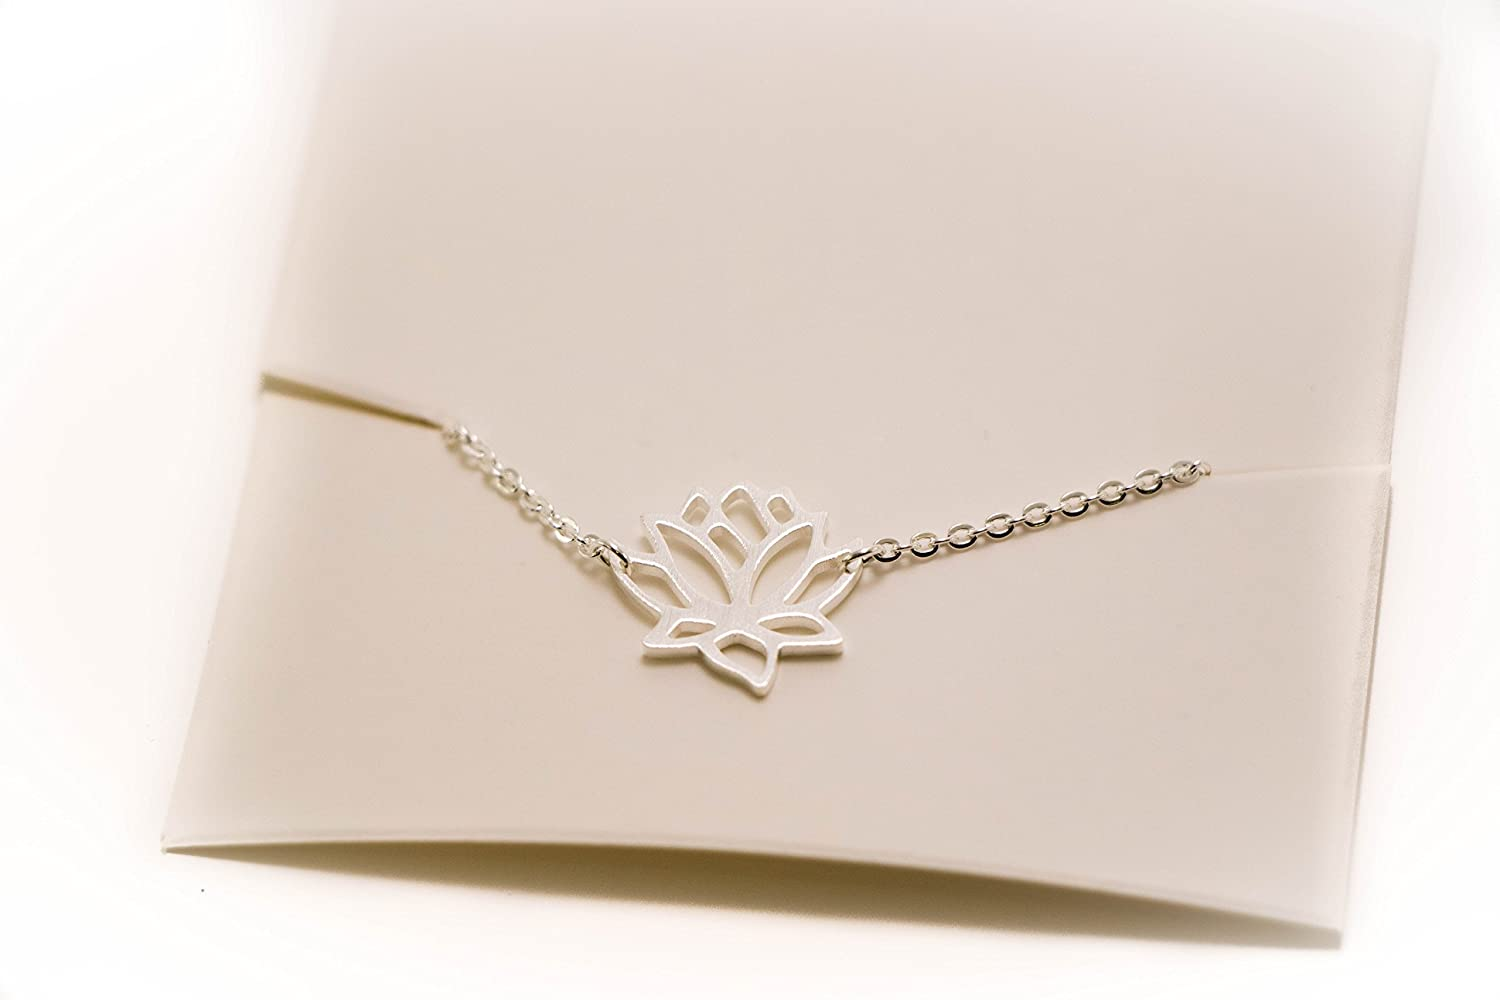 Lotus Flower Chain Anklet - Fashion Jewelry Sasso